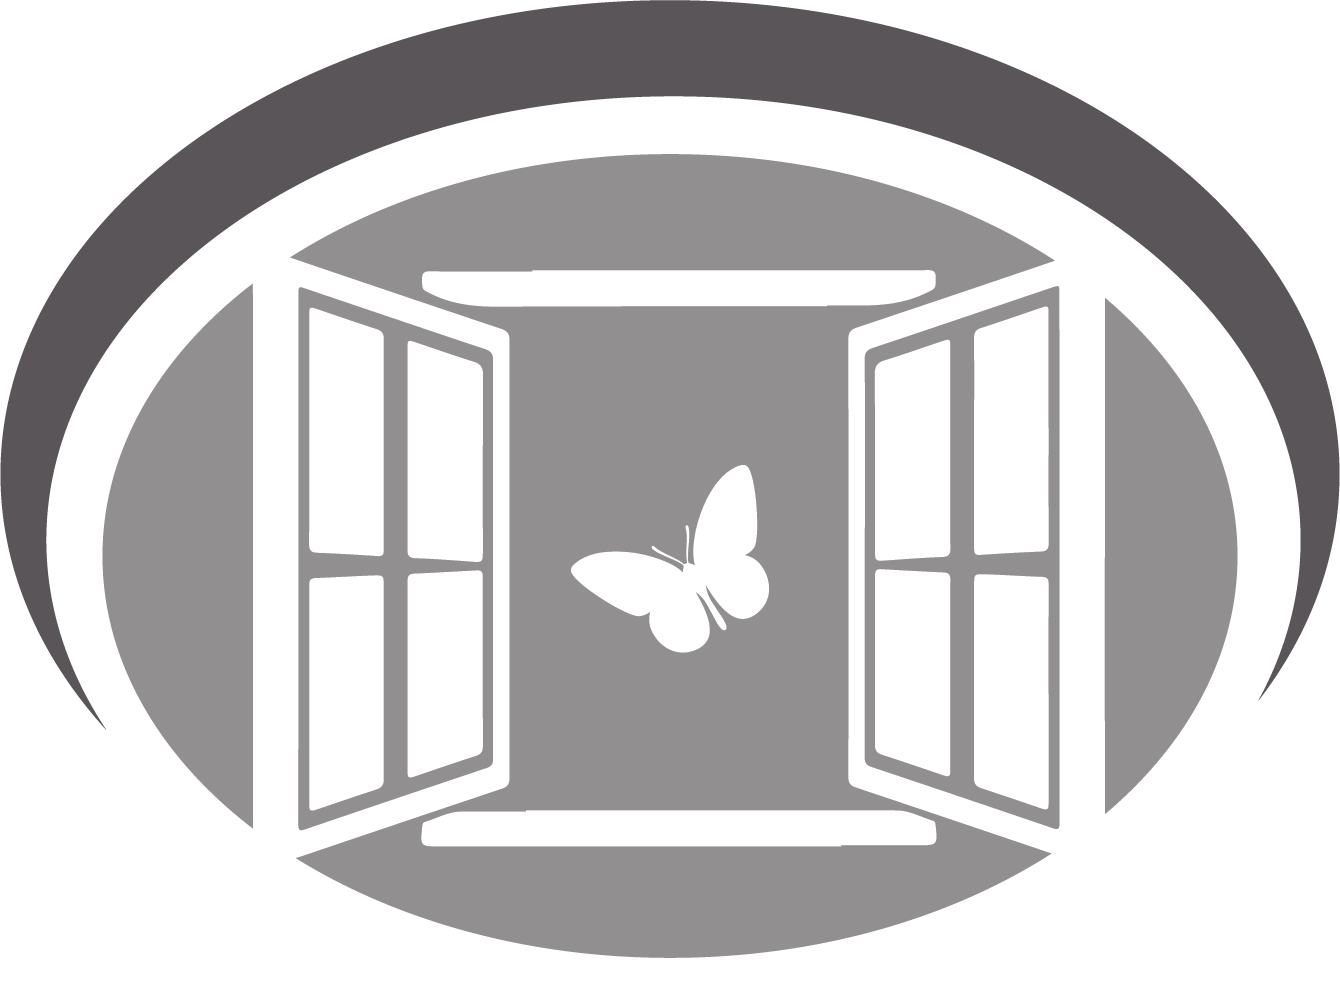 cgpsa logo of a window with a butterfly exiting